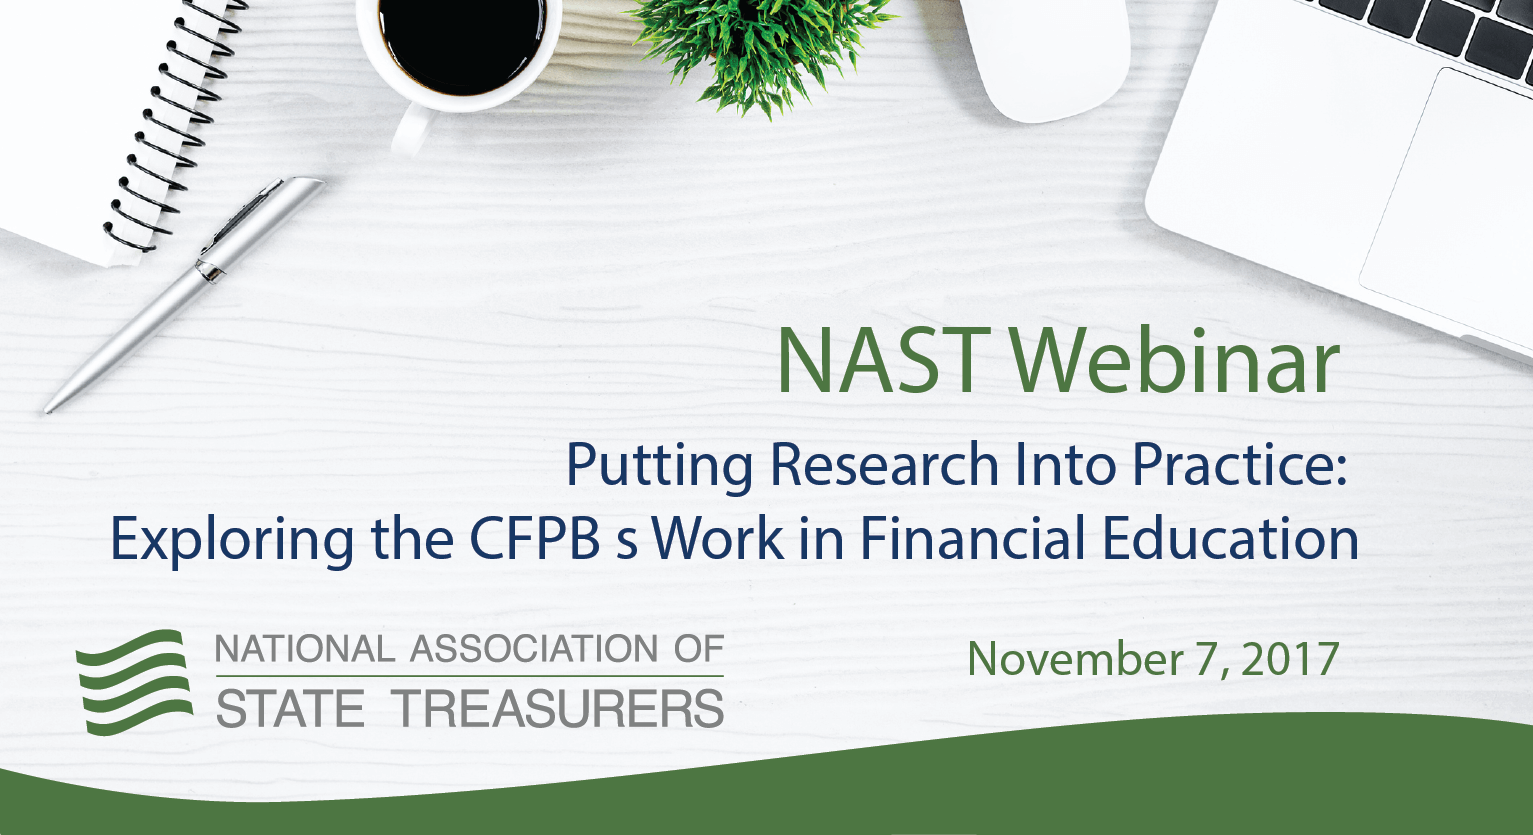 Putting Research Into Practice: Exploring the CFPB s Work in Financial Education